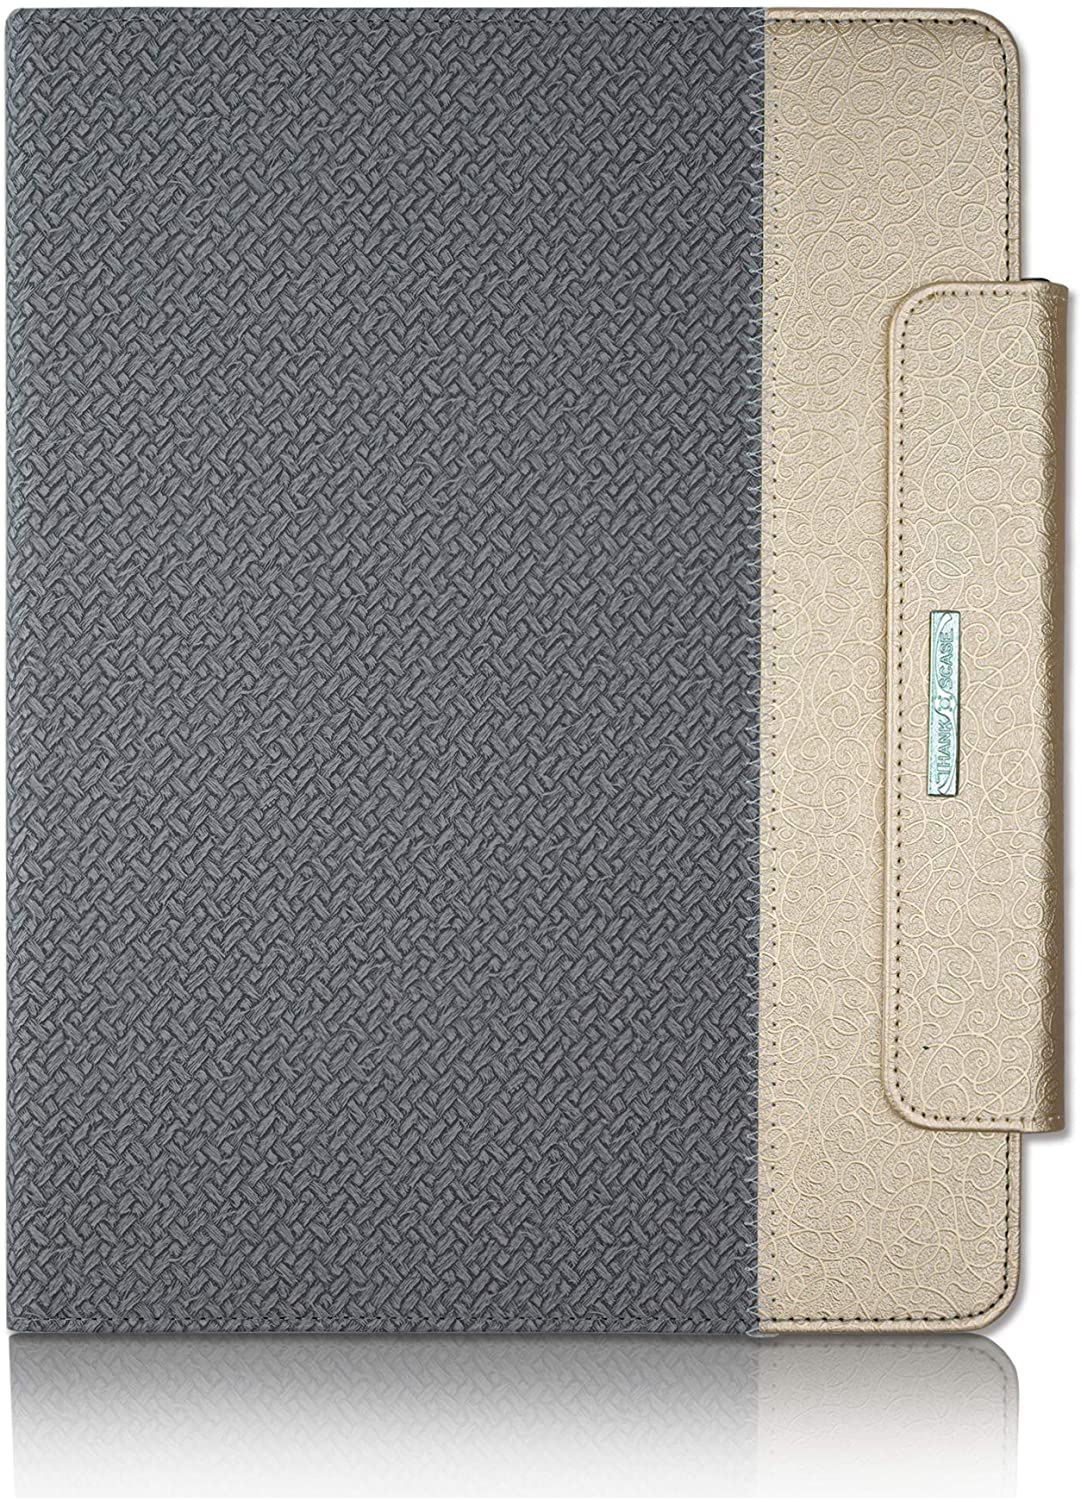 Thankscase Case for iPad Pro 12.9 2020, Rotating TPU Smart Cover with Pencil Holder [Support Pencil Charging], Wallet Pocket, Hand Strap for iPad Pro 12.9 4th Gen/ 3rd Gen (Grey Gold)